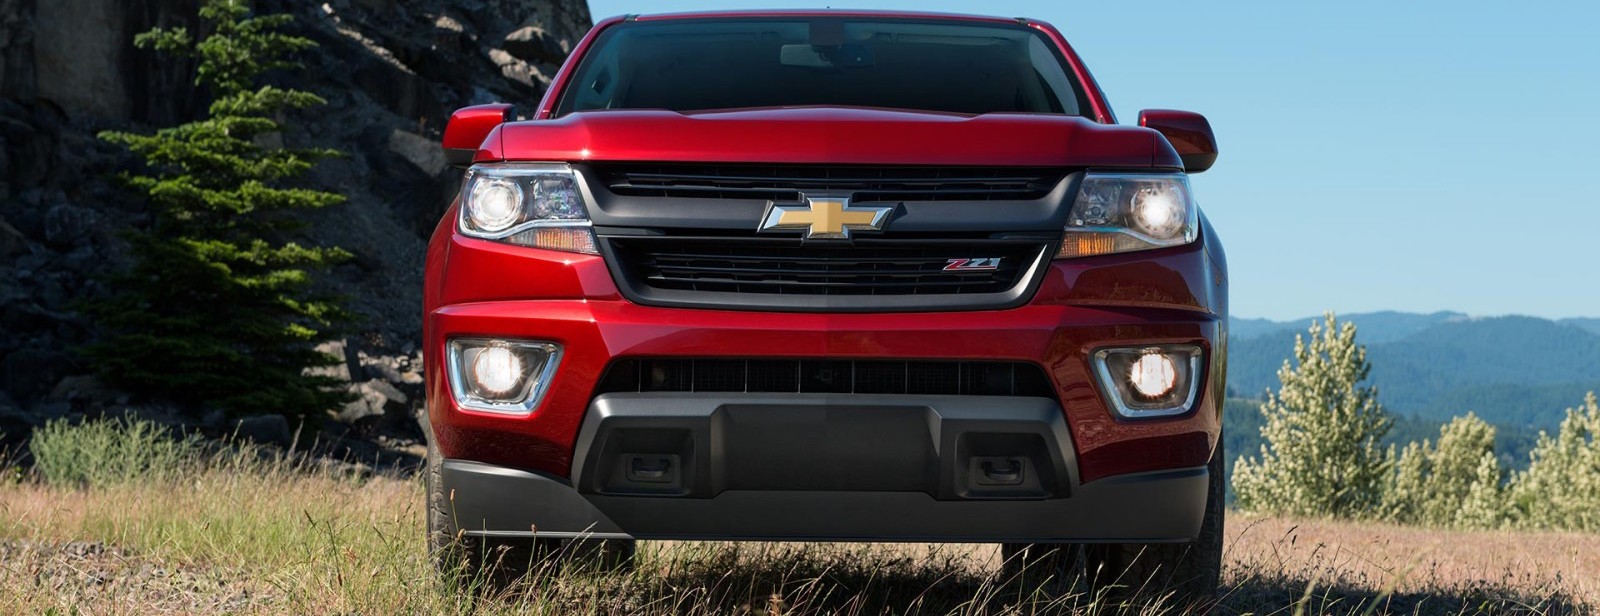 2016 Chevy Colorado Design